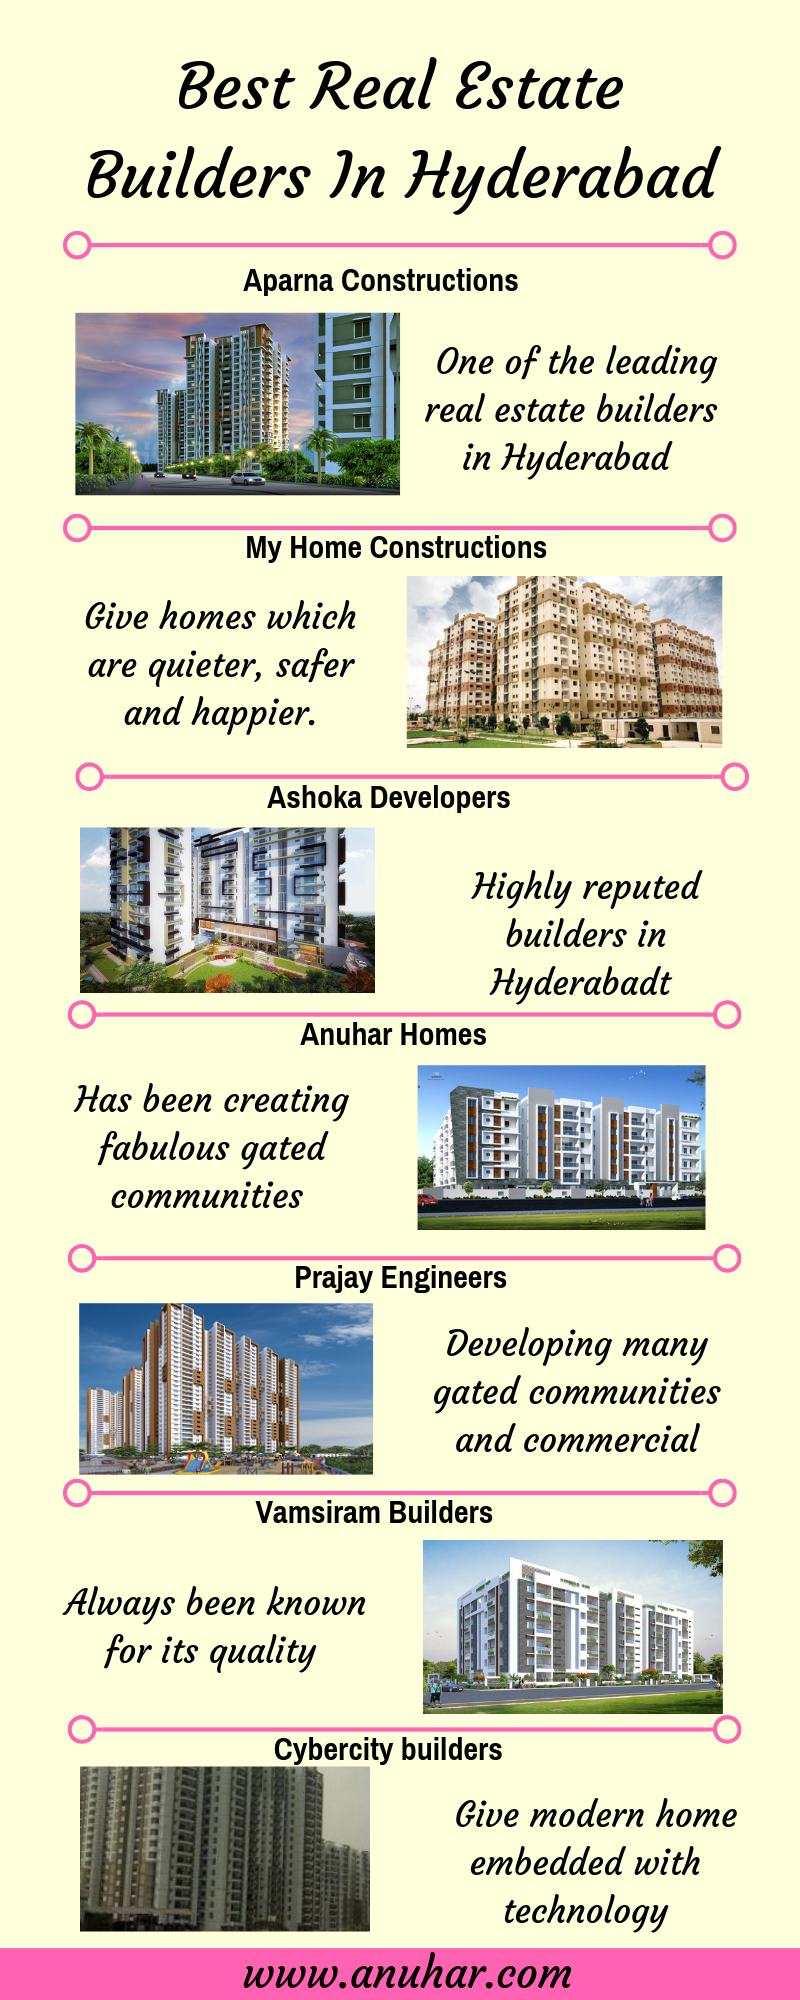 Anuhar Homes Has Been Creating Fabulous Gated Communities From The Past 12 Years Gated Community Construction Process Home Construction